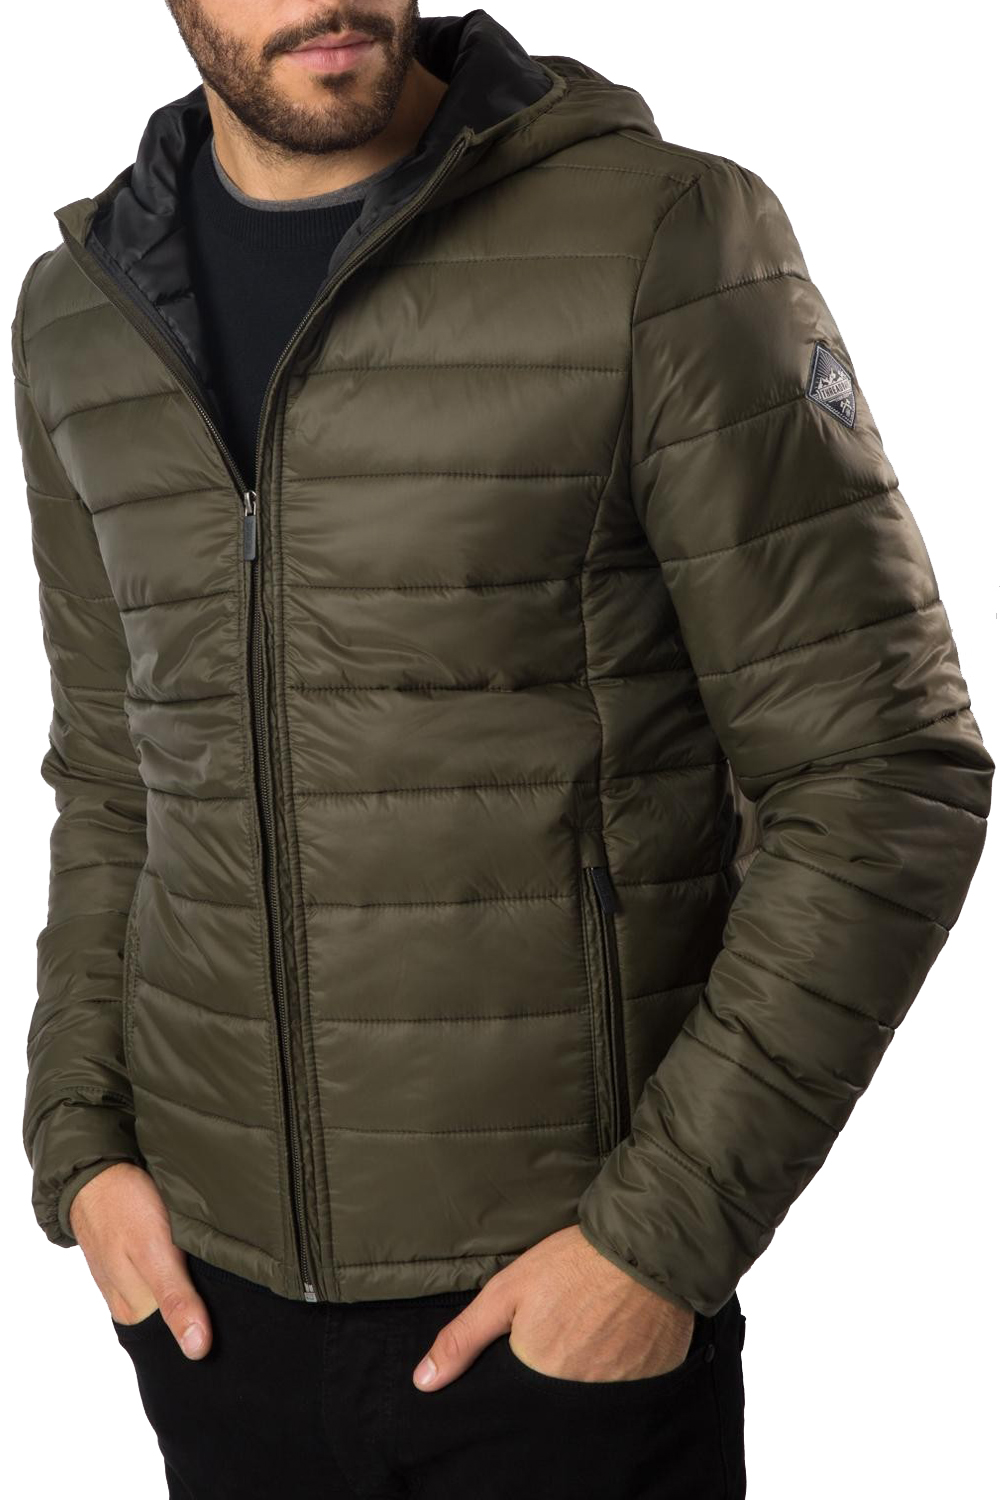 Threadbare Mongrel V2 Hooded Quilt Jacket - L7364